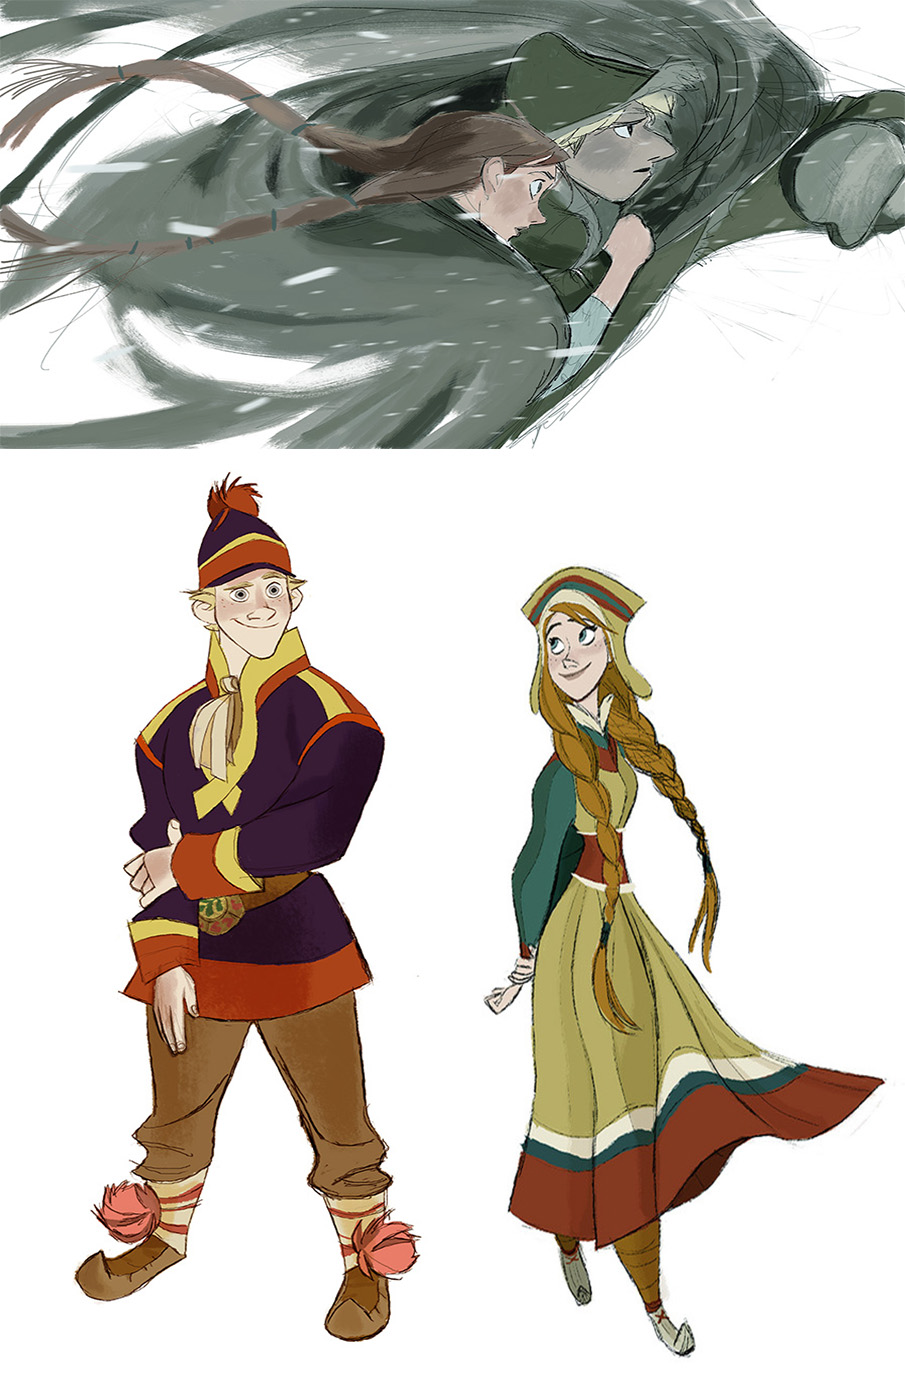 Frozen Early Concept Art - Frozen Photo (36207388) - Fanpop